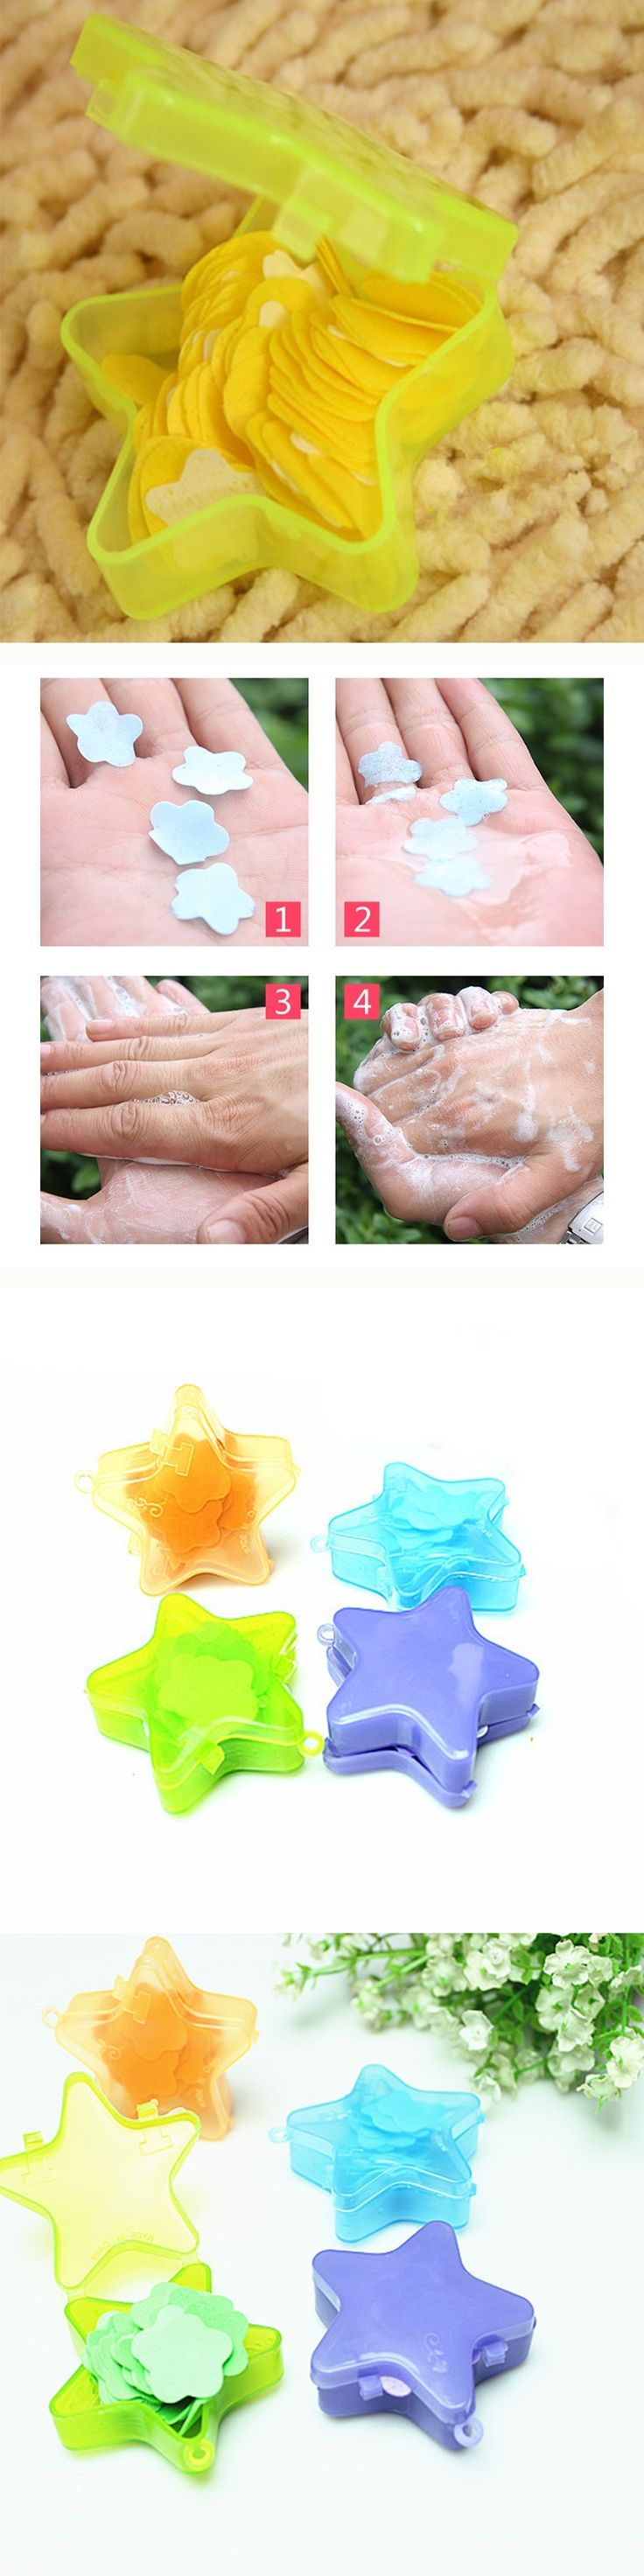 2pcs Portable Soap Paper Star Shaped Hand Bath Cleaning Travel Ourdoor Bath Soap Paper Sheets Convenient Foaming Soap Box